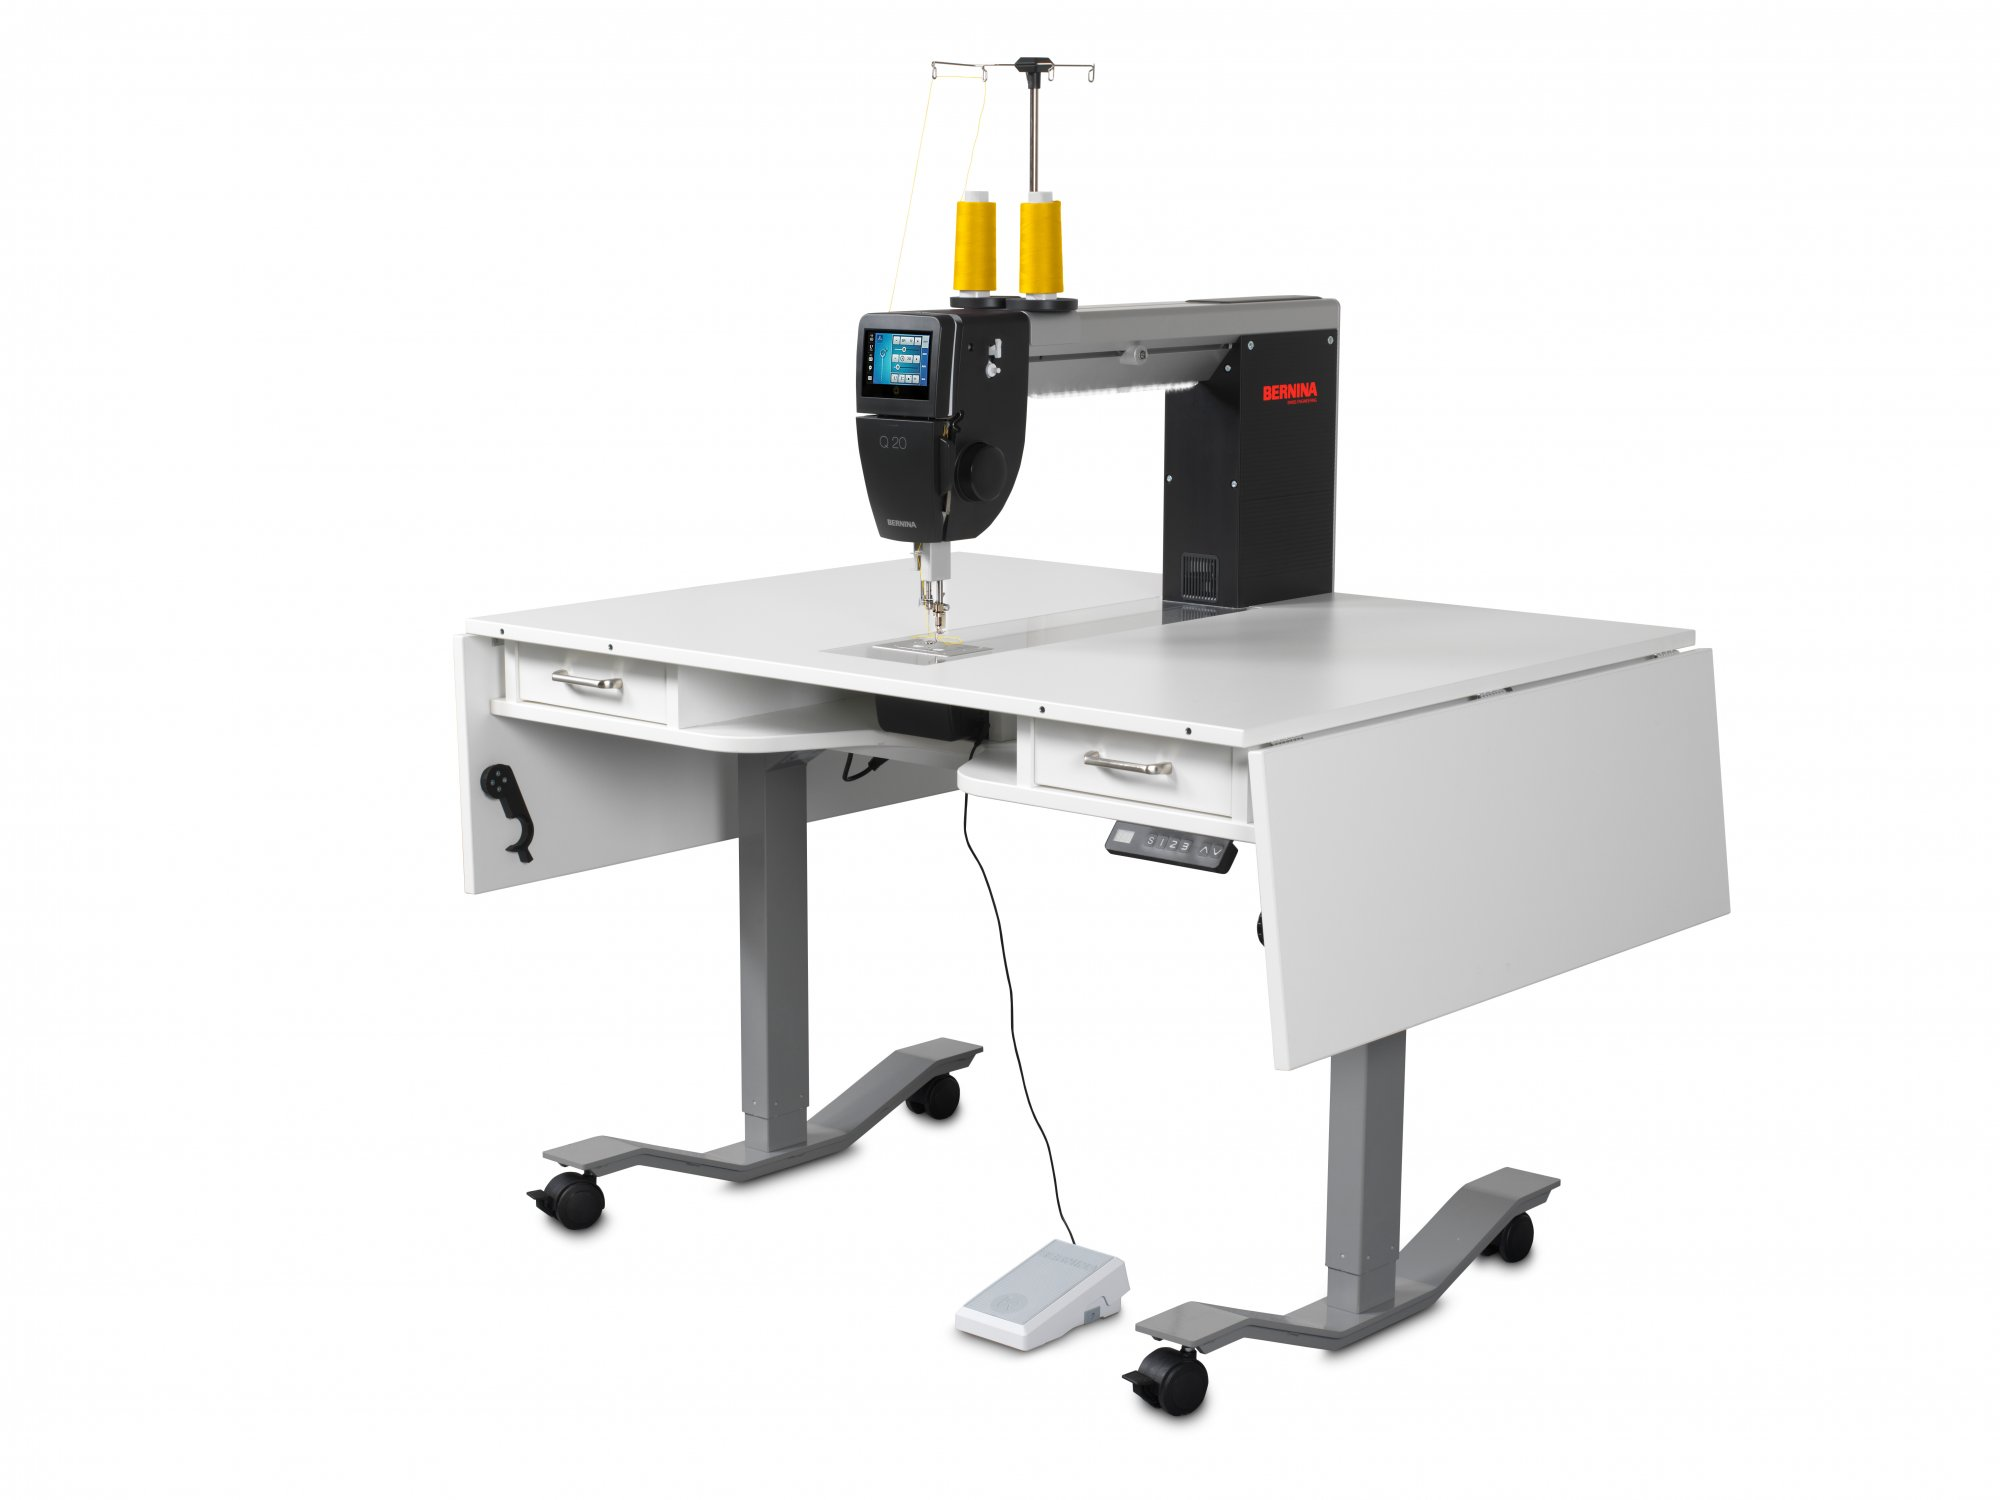 Bernina Q 20 Horn Lift Table